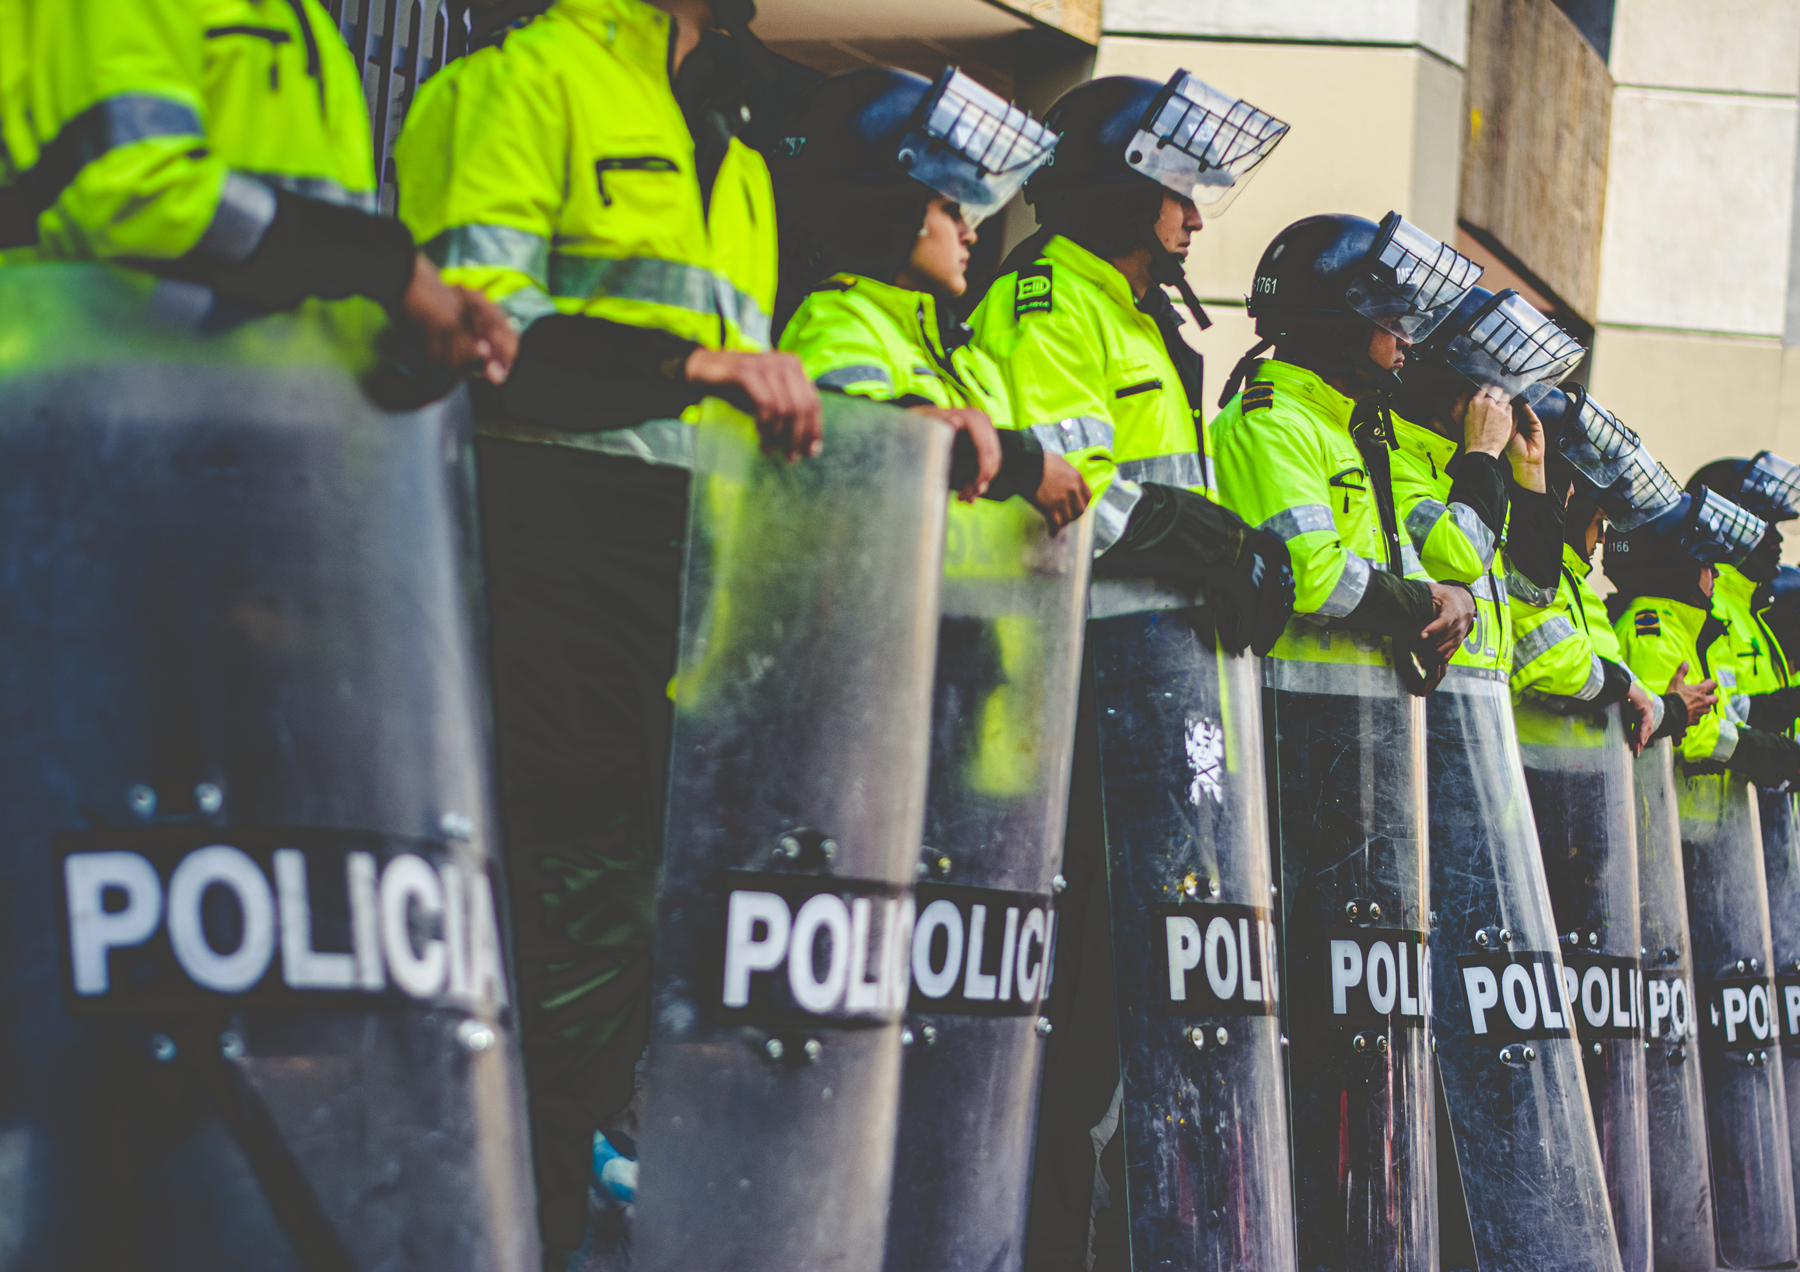 Photograph of law enforcement in Colombia